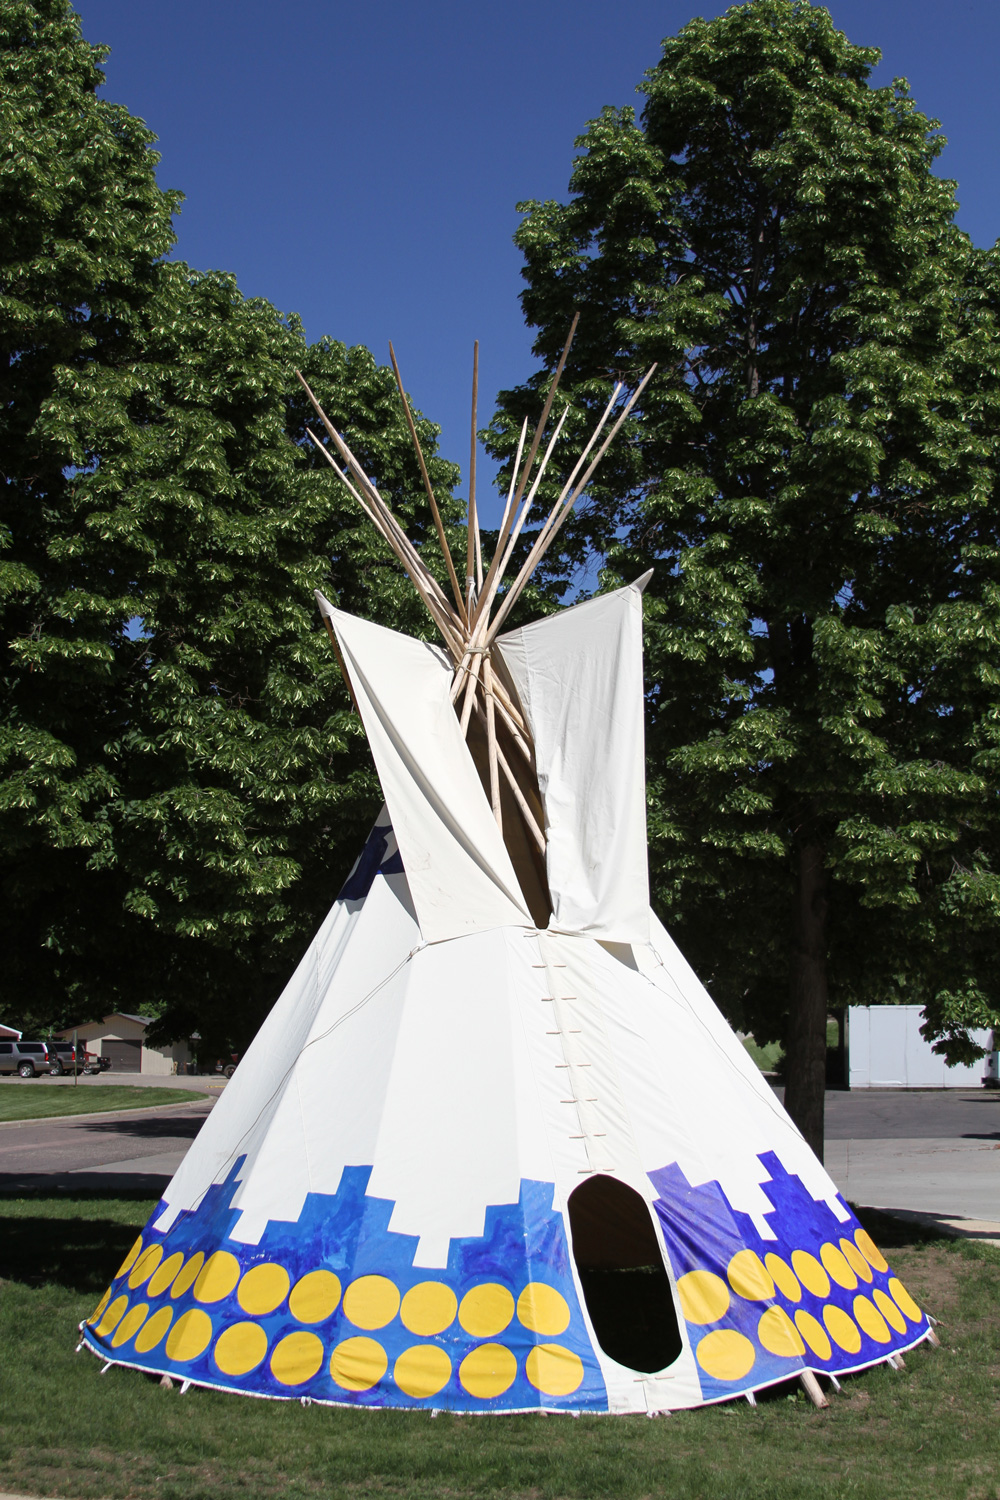 A tipi stands outside the entrance of the Akta Lakota Museum & Cultural Center.